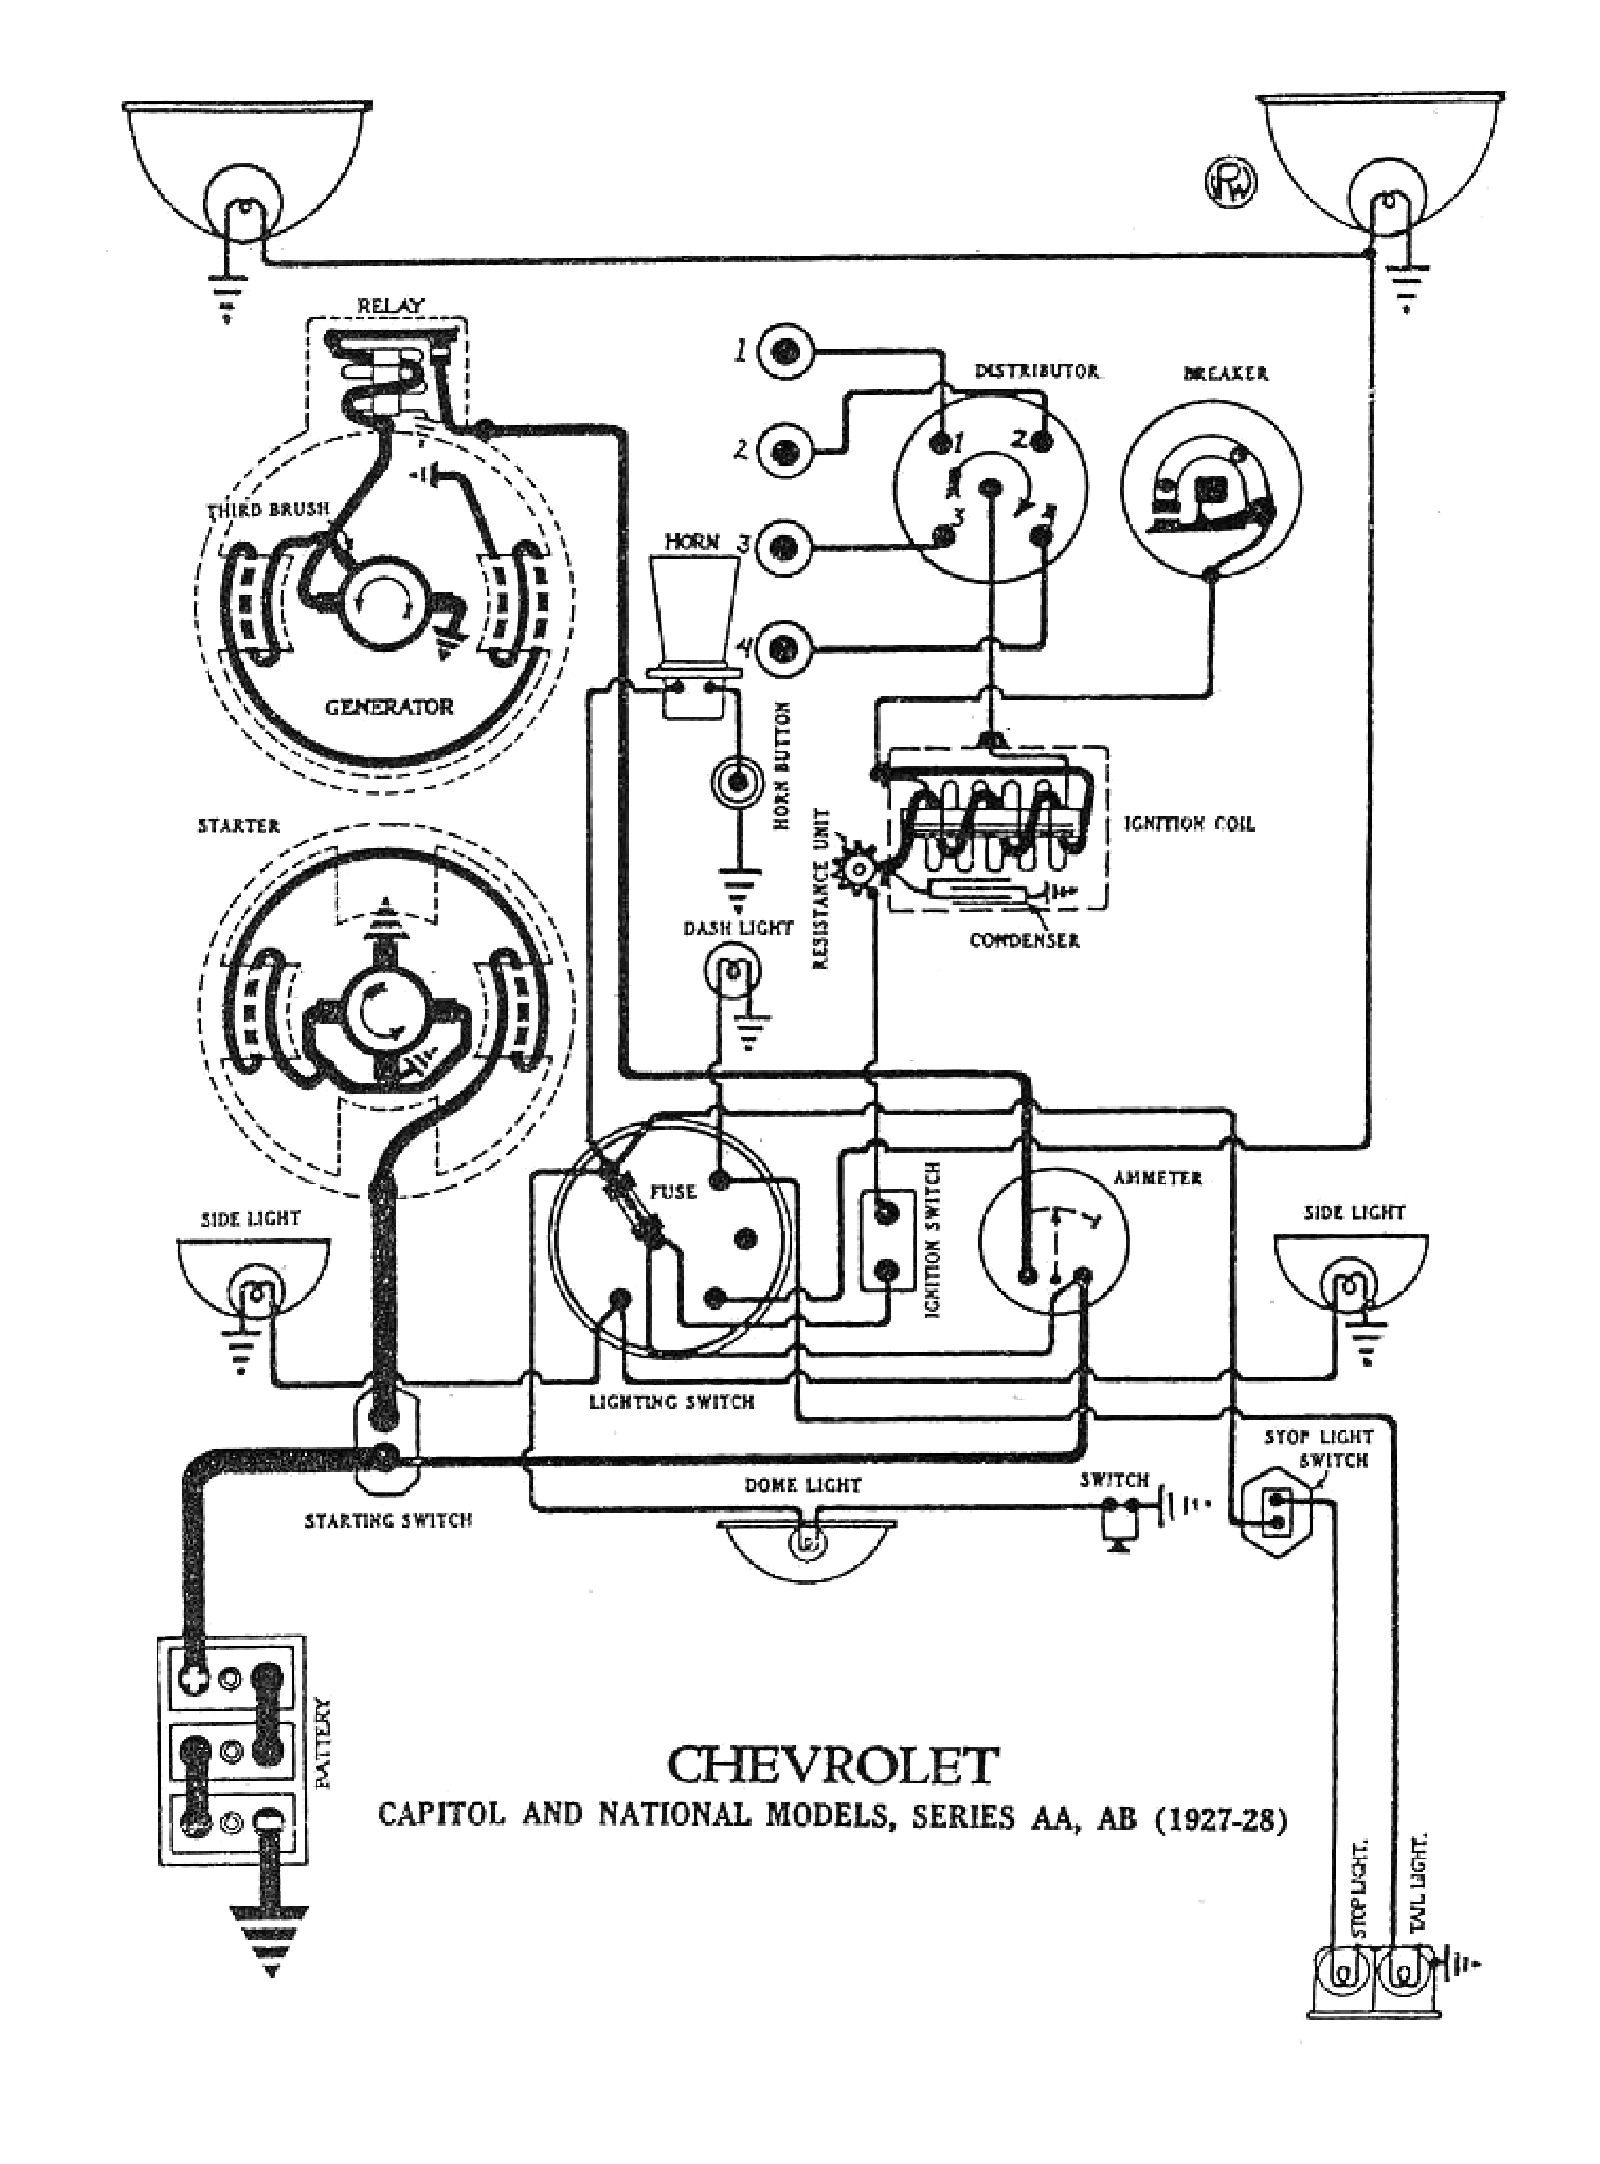 1953 Ford Jubilee Tractor Wiring Diagram Additionally Ford